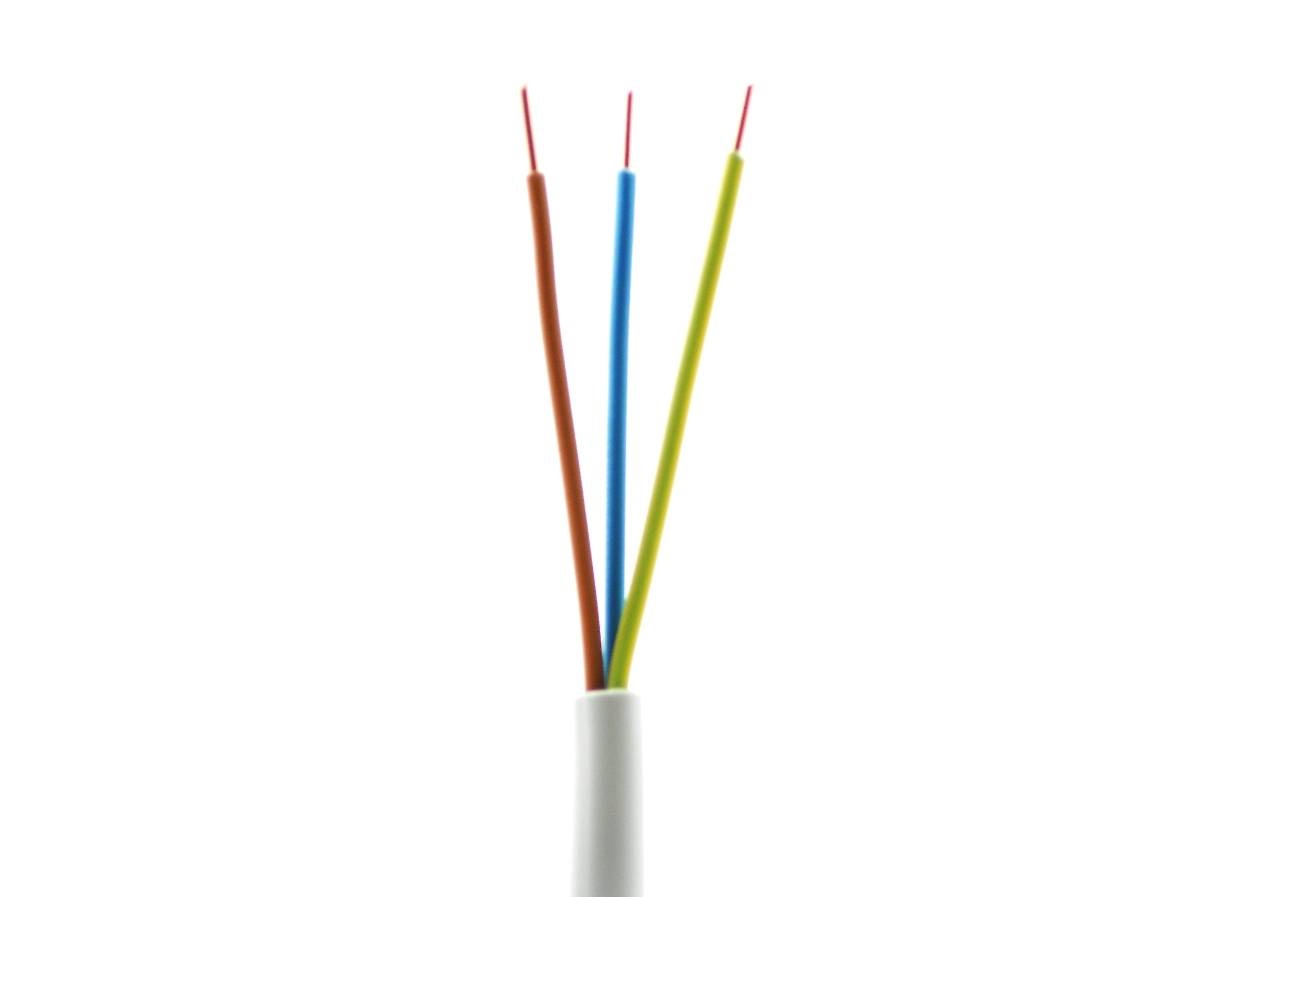 3 x 2.5mm NYM-J Industrial Electrical Cable (Per 1mtr) 325NYM